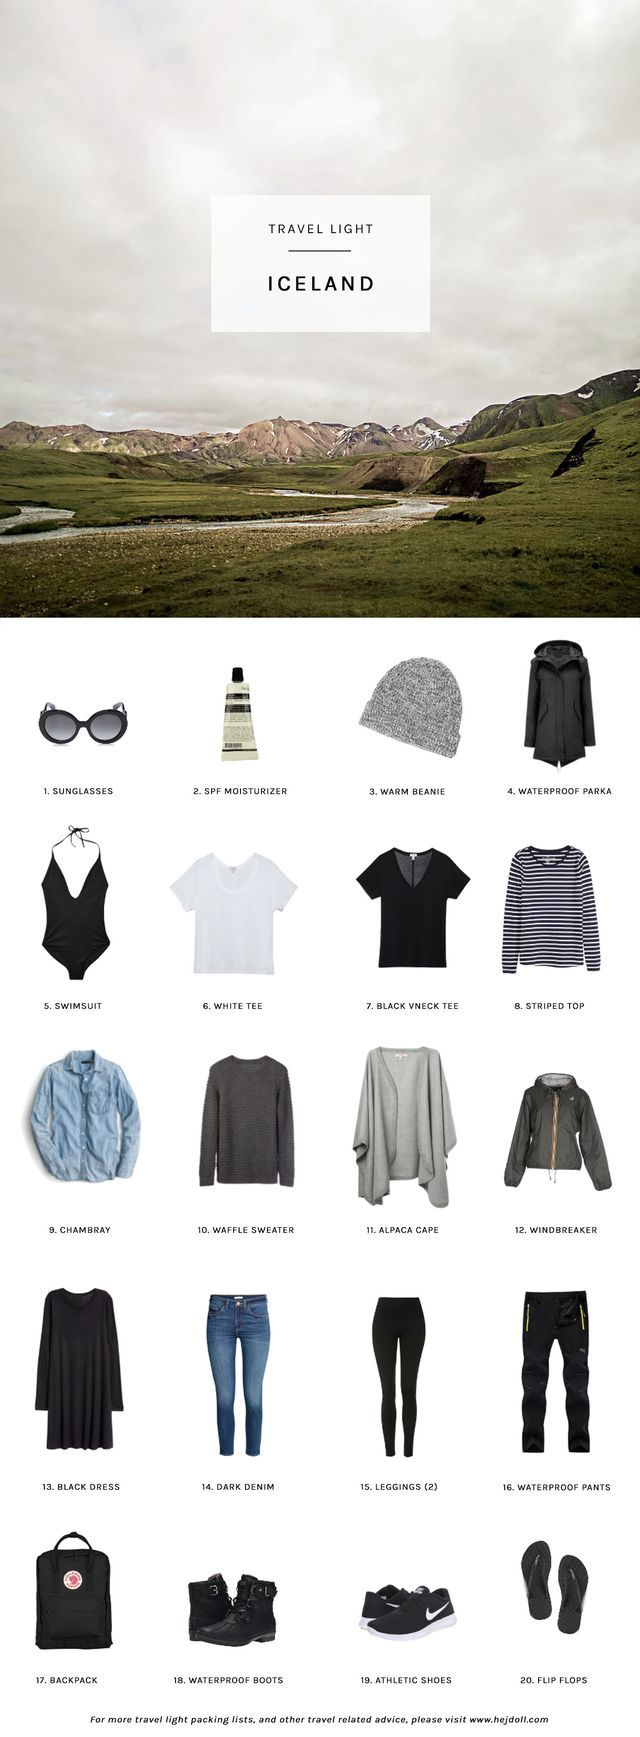 Pack for Iceland in the Summer (hej doll)